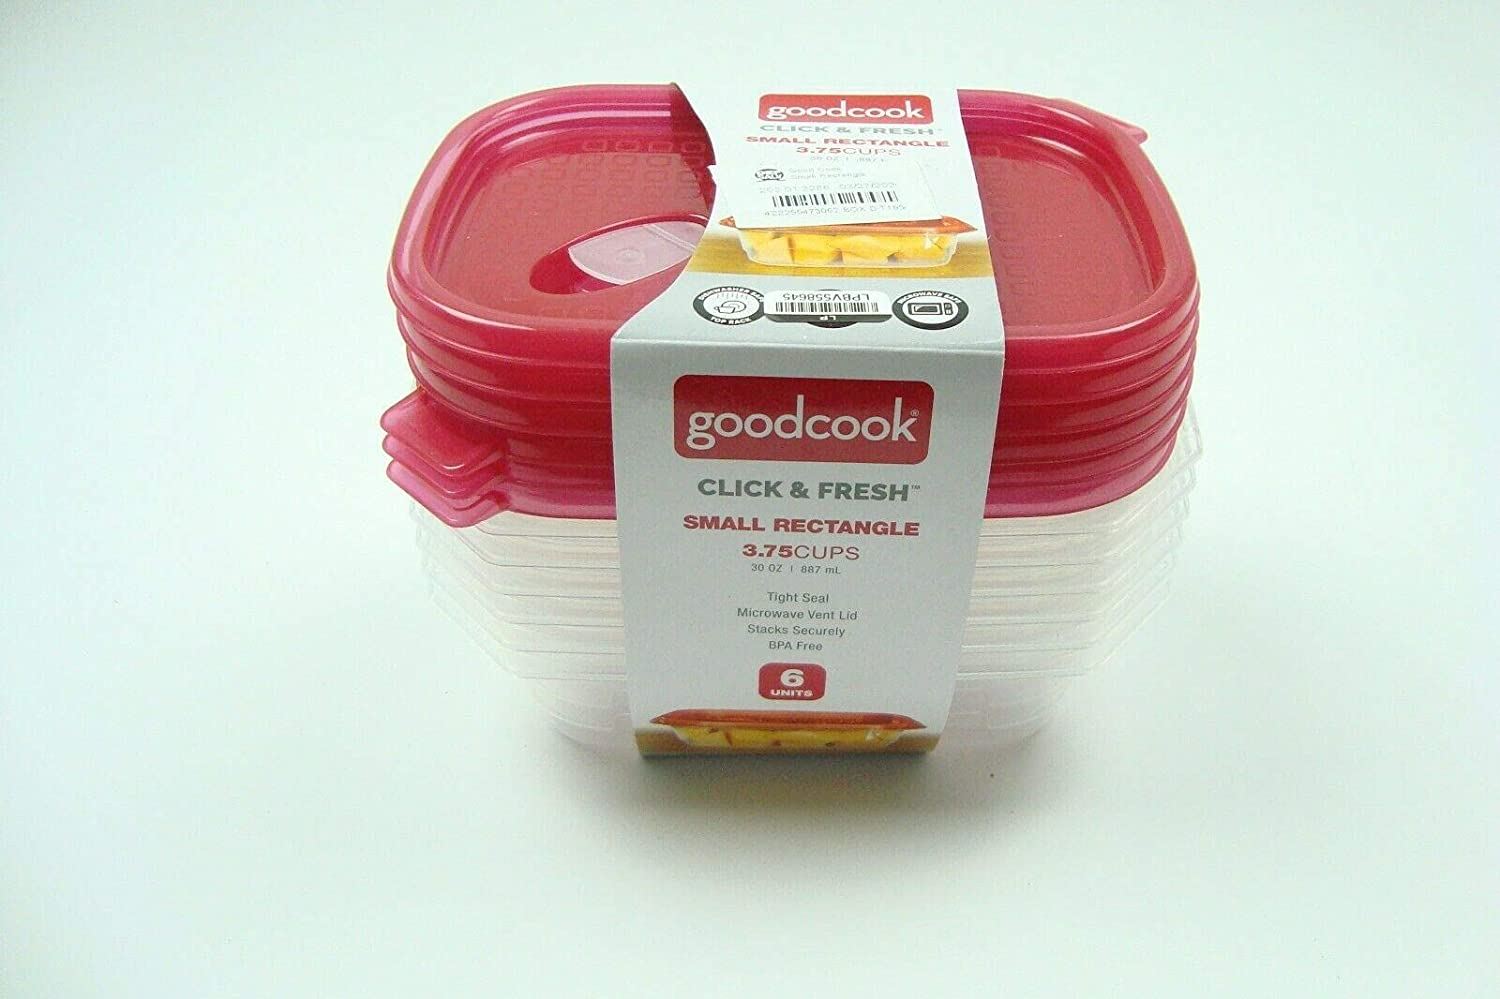 GoodCook Click & Fresh Red Small Rectangle Microwave Safe Food Storage Container 3.75 Cups - Pack of 6